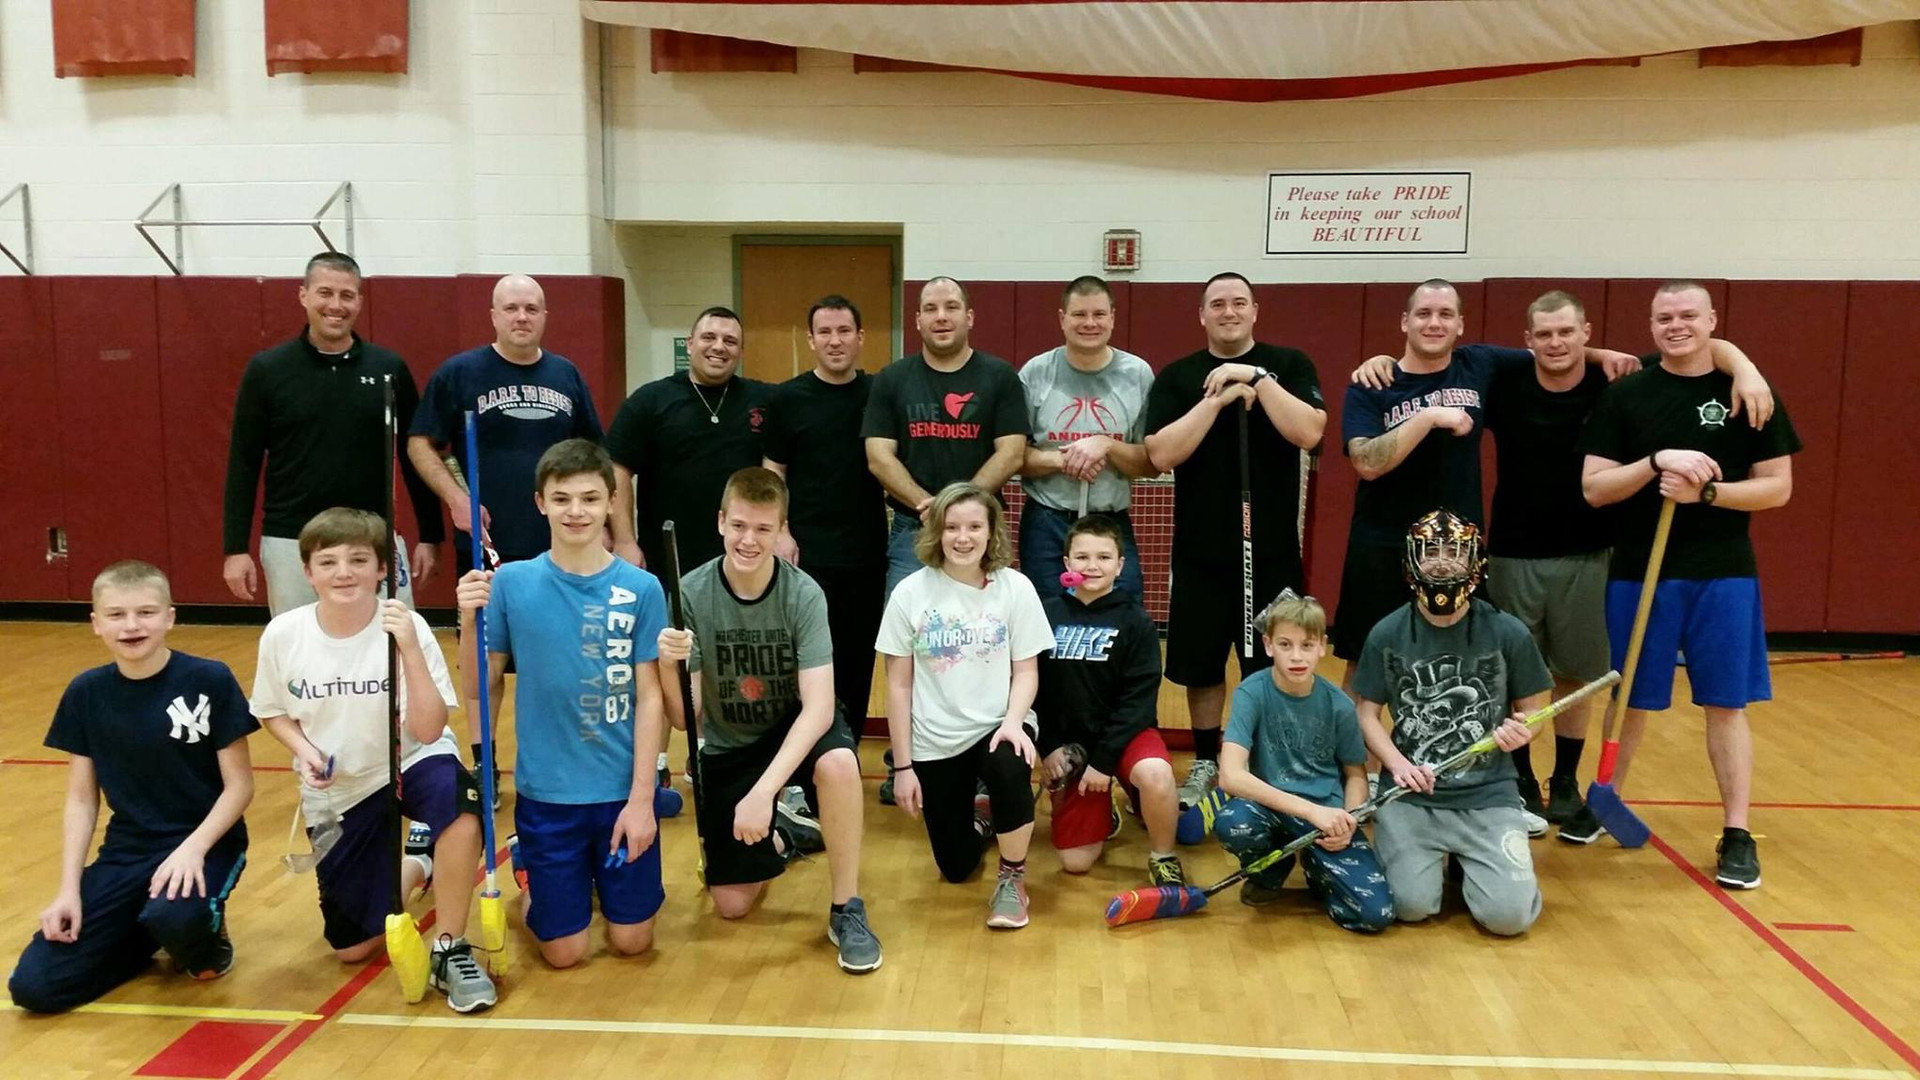 The Annual Cops vs Kids Floor Hockey Game is always a success!